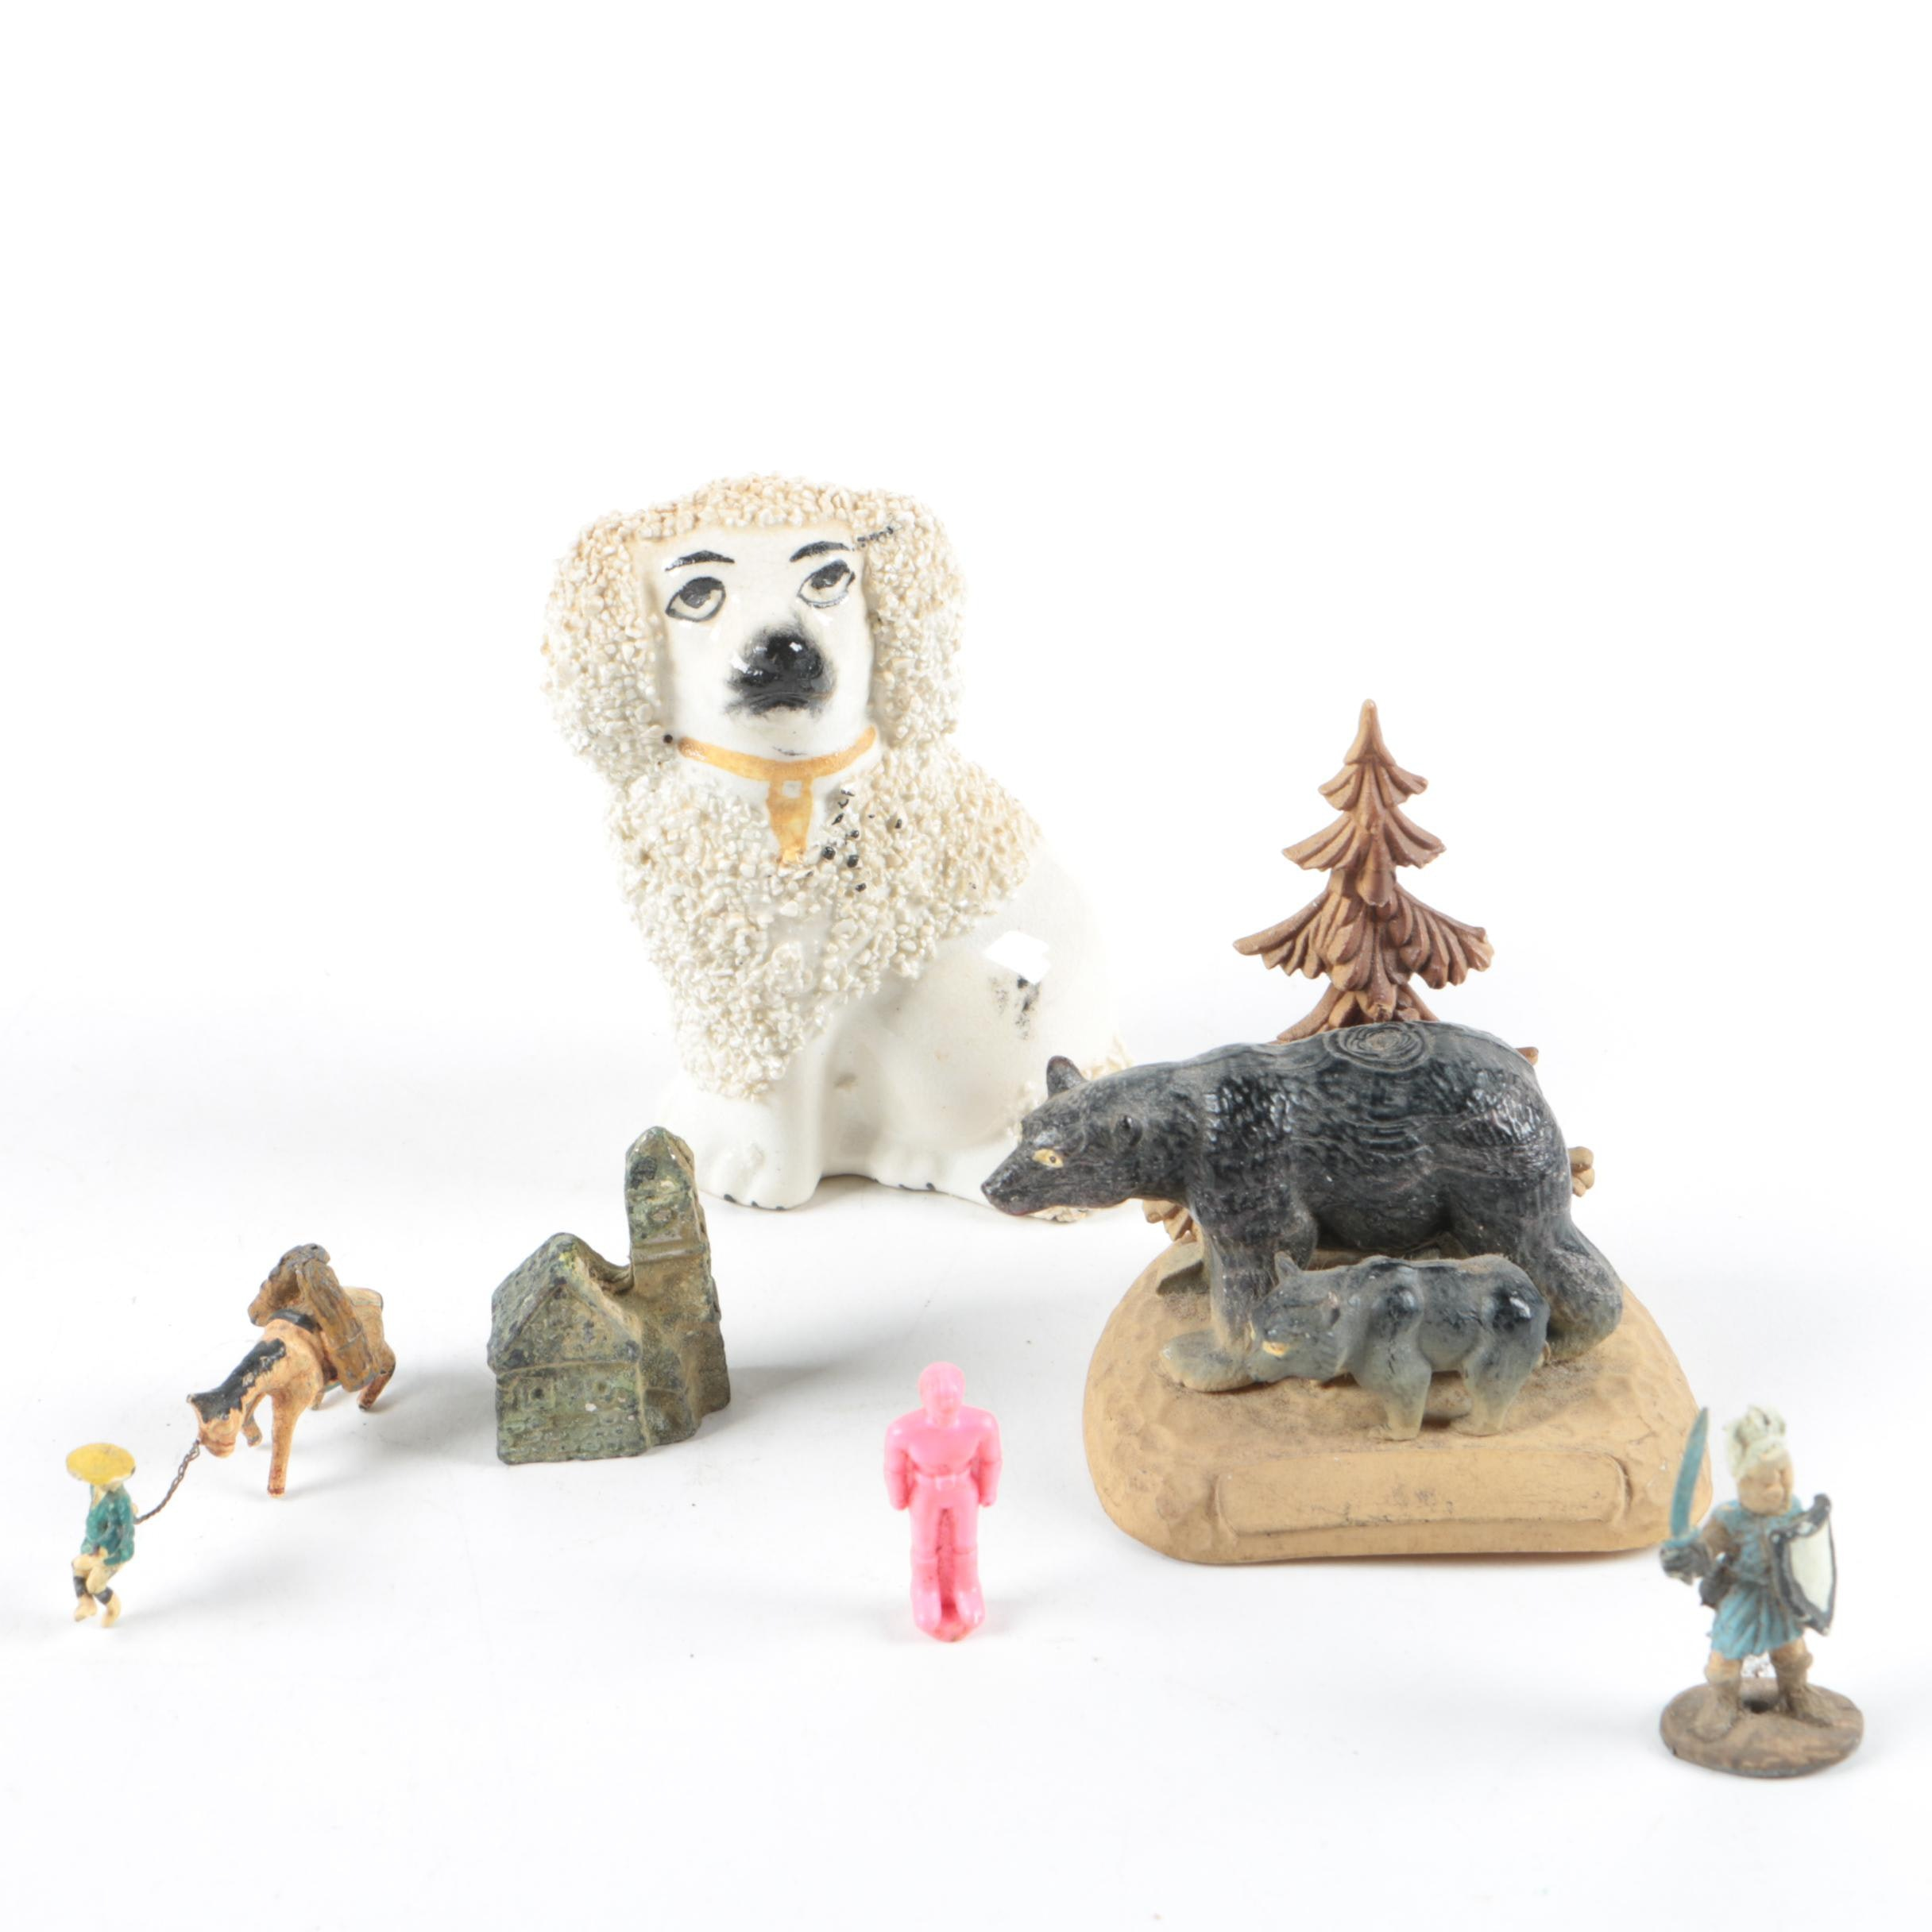 Vintage Old Staffordshire Ware Poodle and Other Figurines